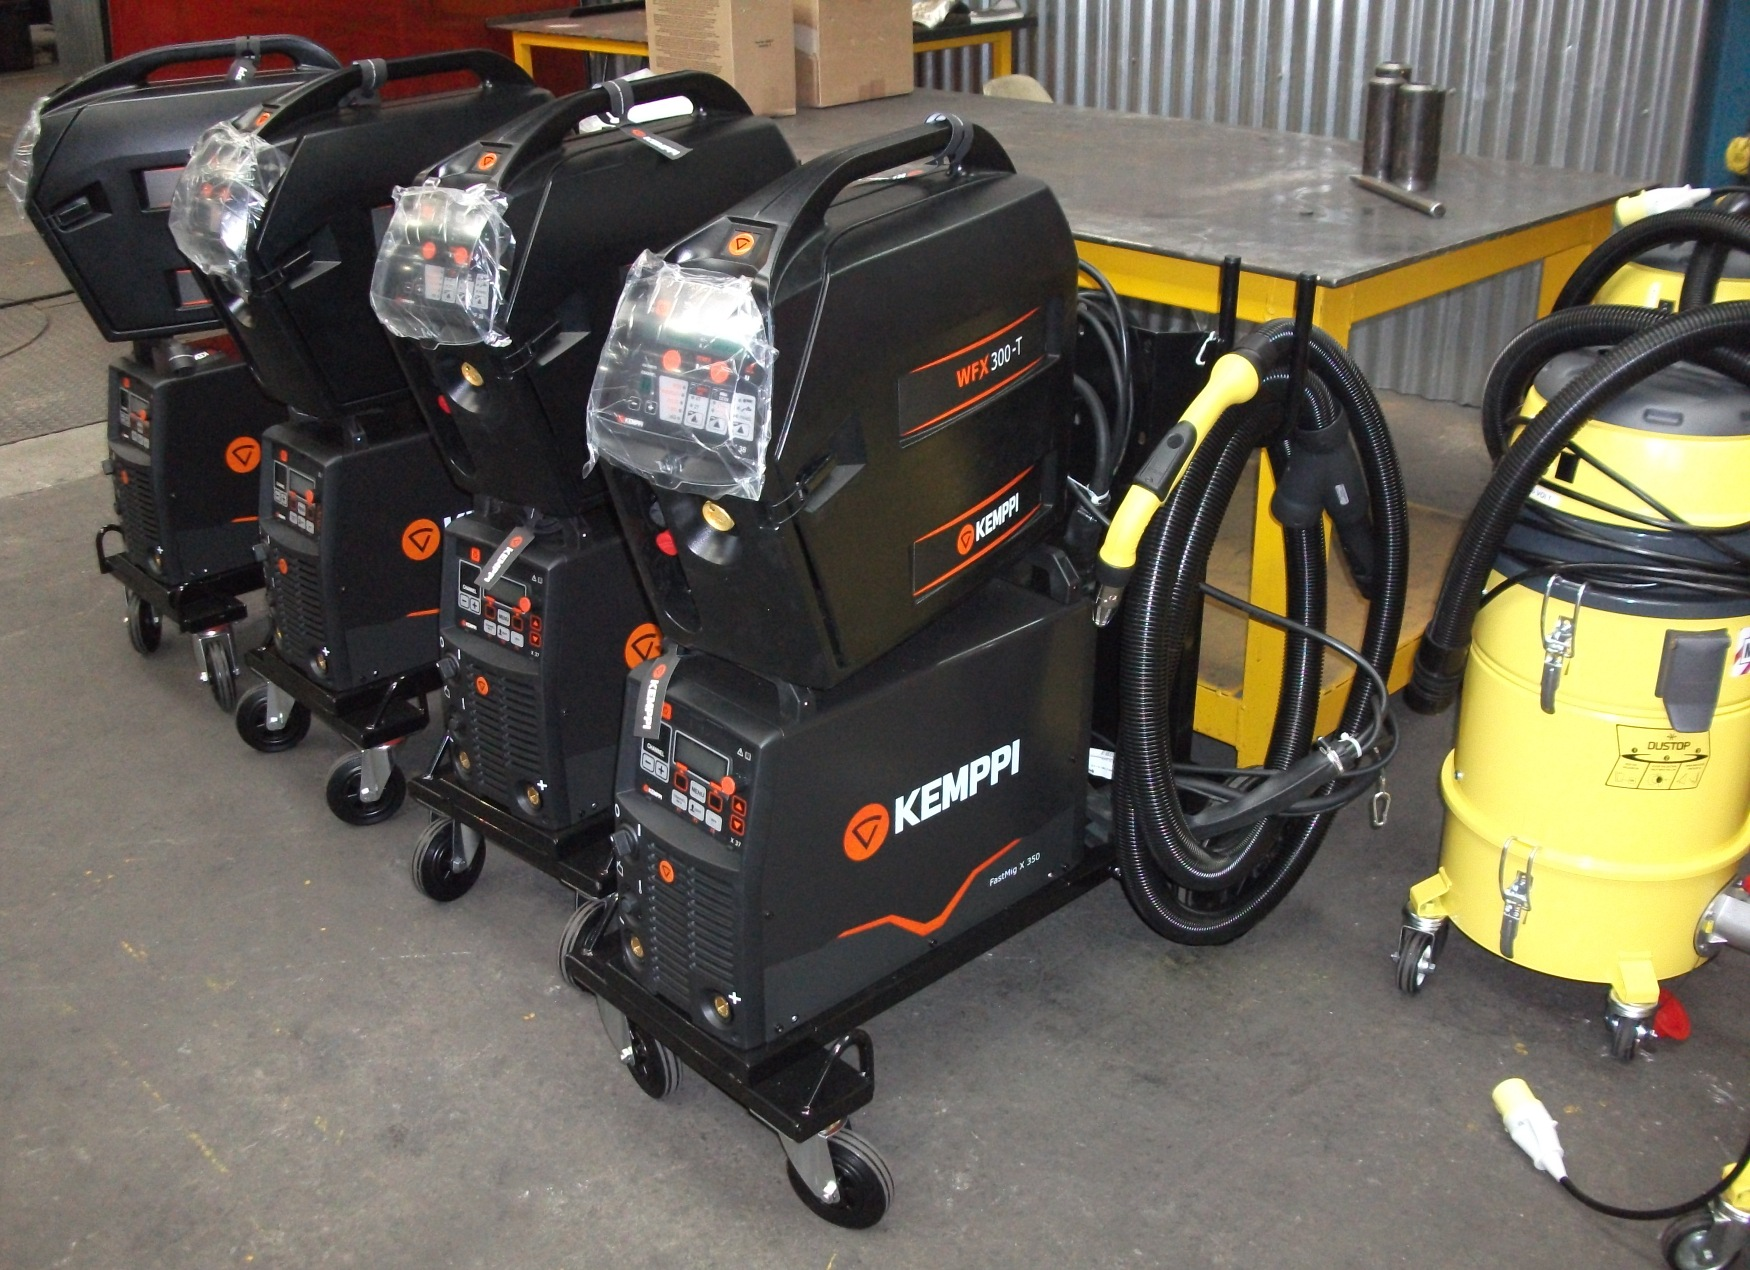 fabrication Kemppi MIG welding sets